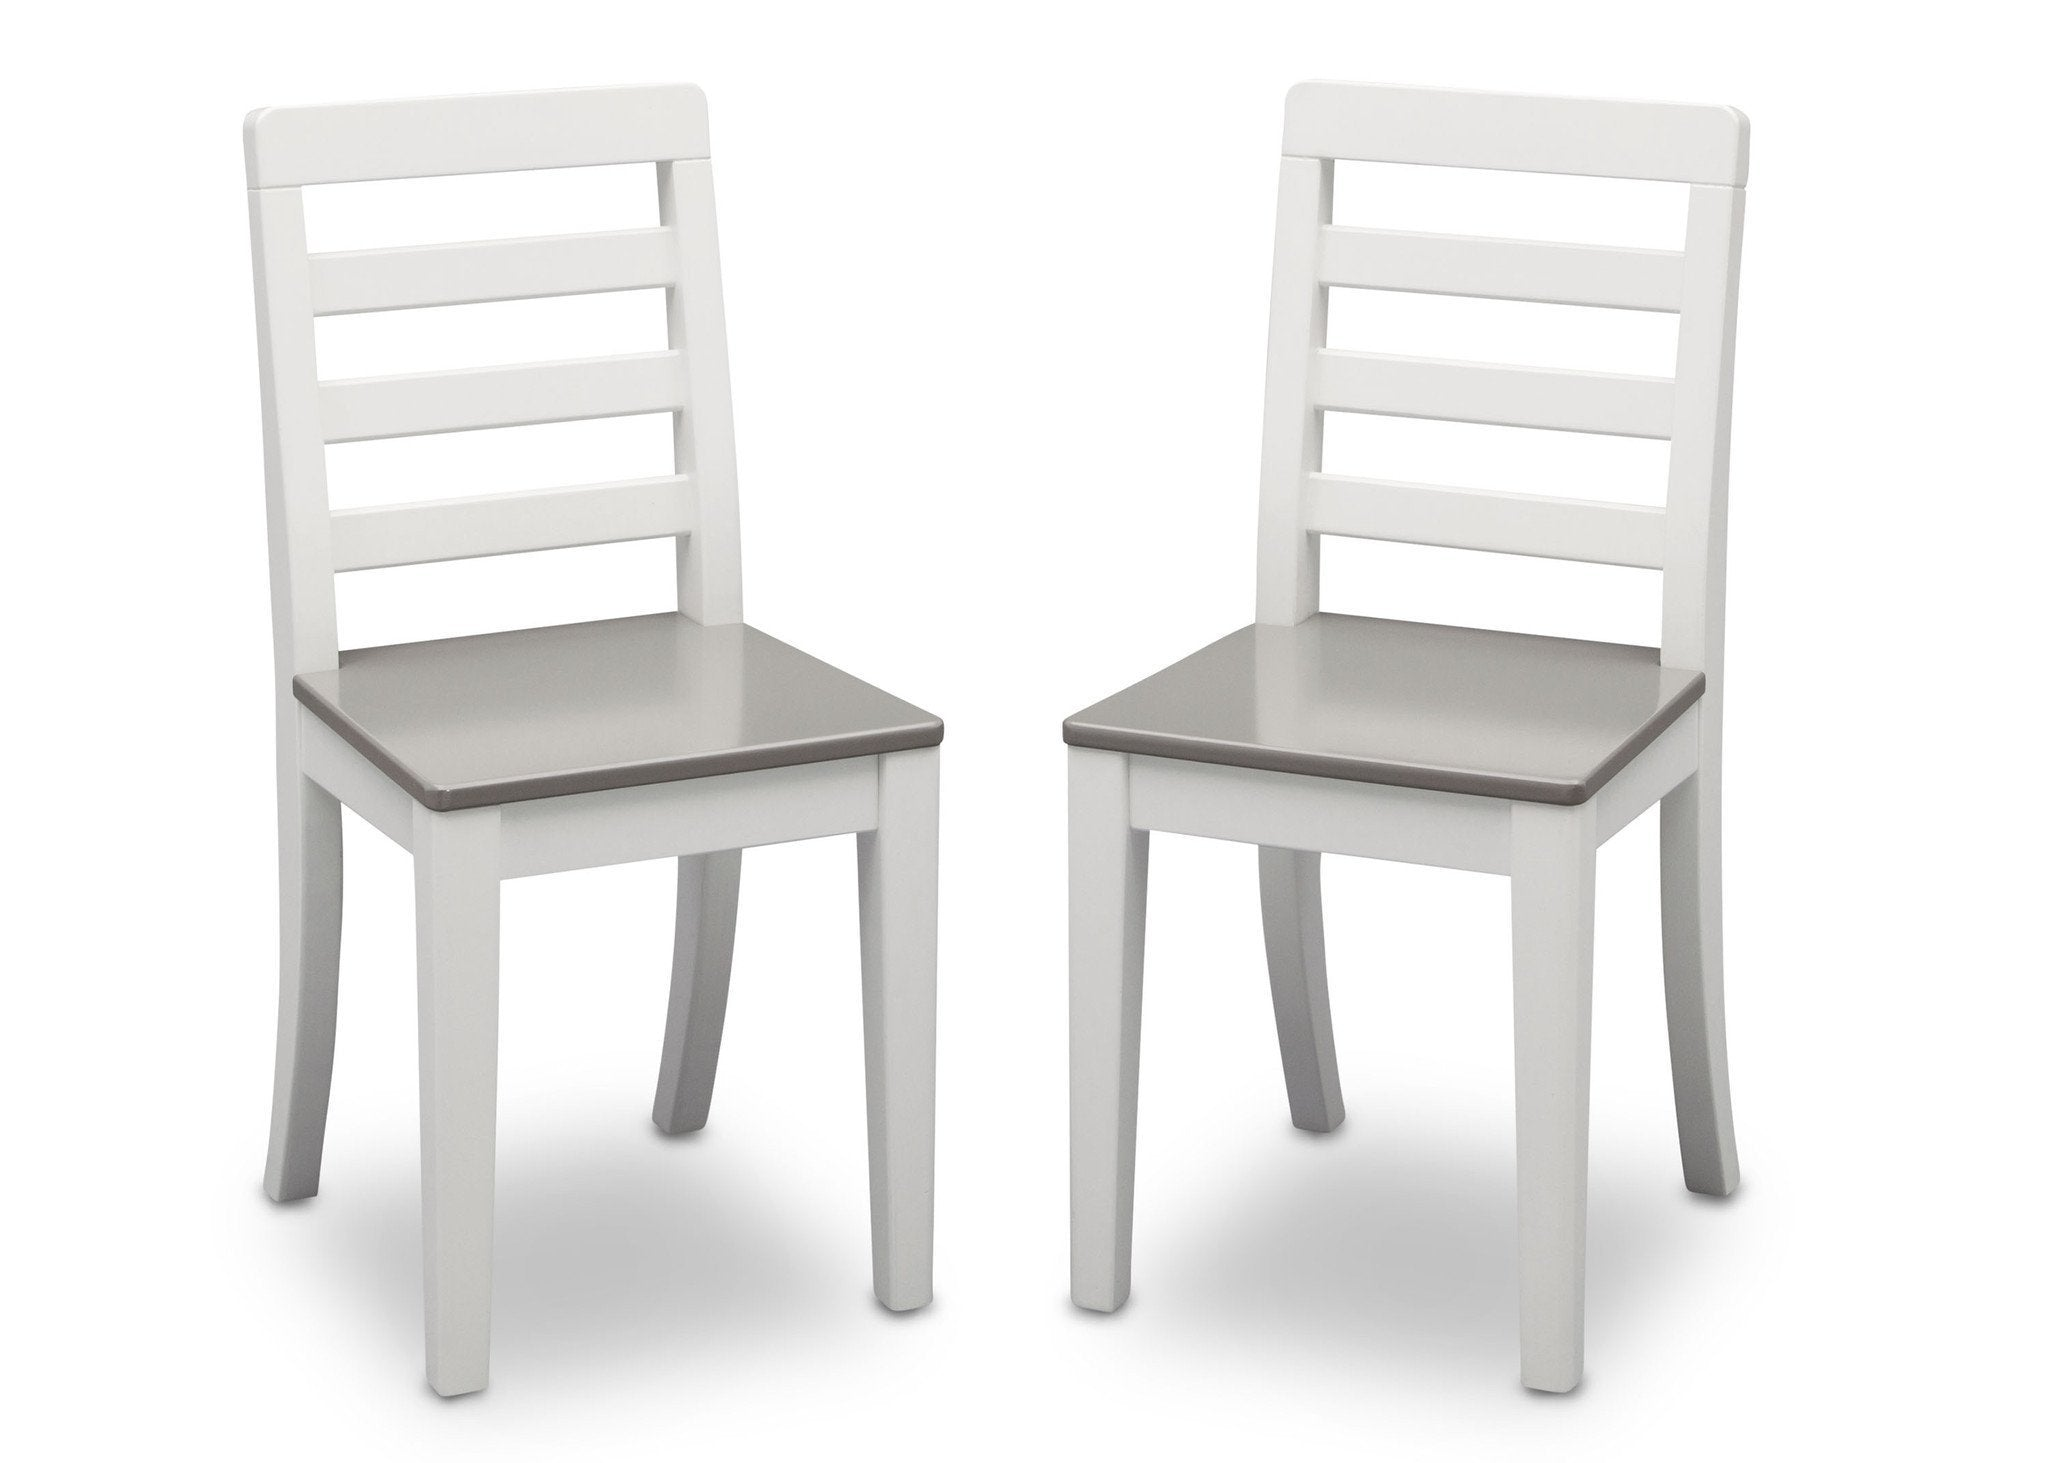 Ordinaire ... Delta Children Bianca With Grey (166) Gateway 2 Chairs, Front View A4a  ...